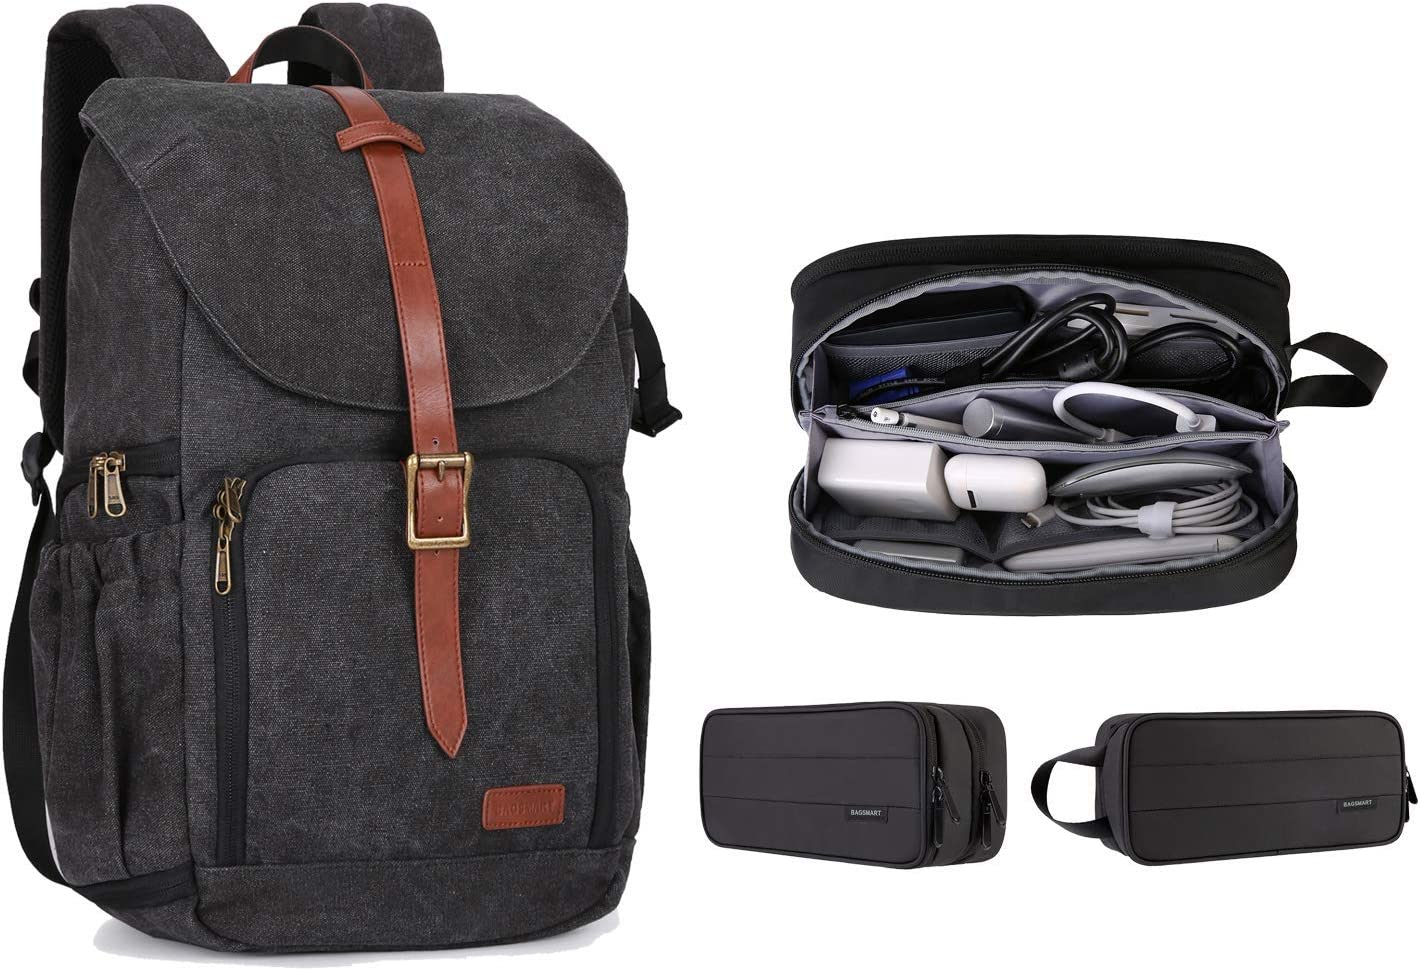 BAGSMART Anti-Theft Camera Backpack and Electronic Storage Pouch Large